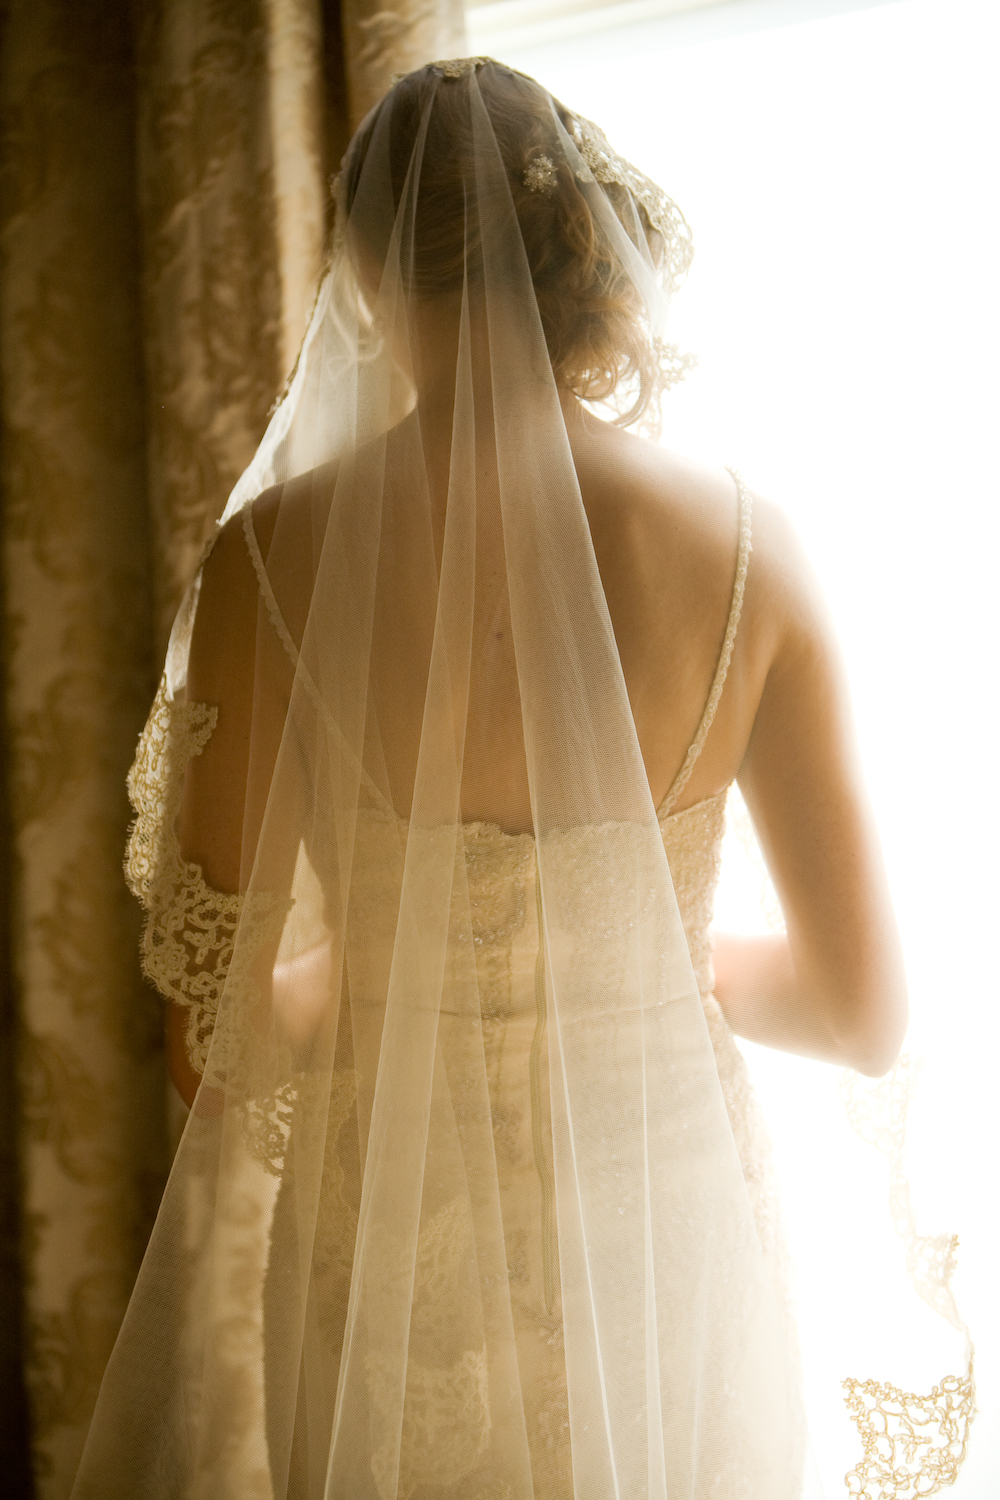 Veils, Fashion, Bride, Veil, A medley photography